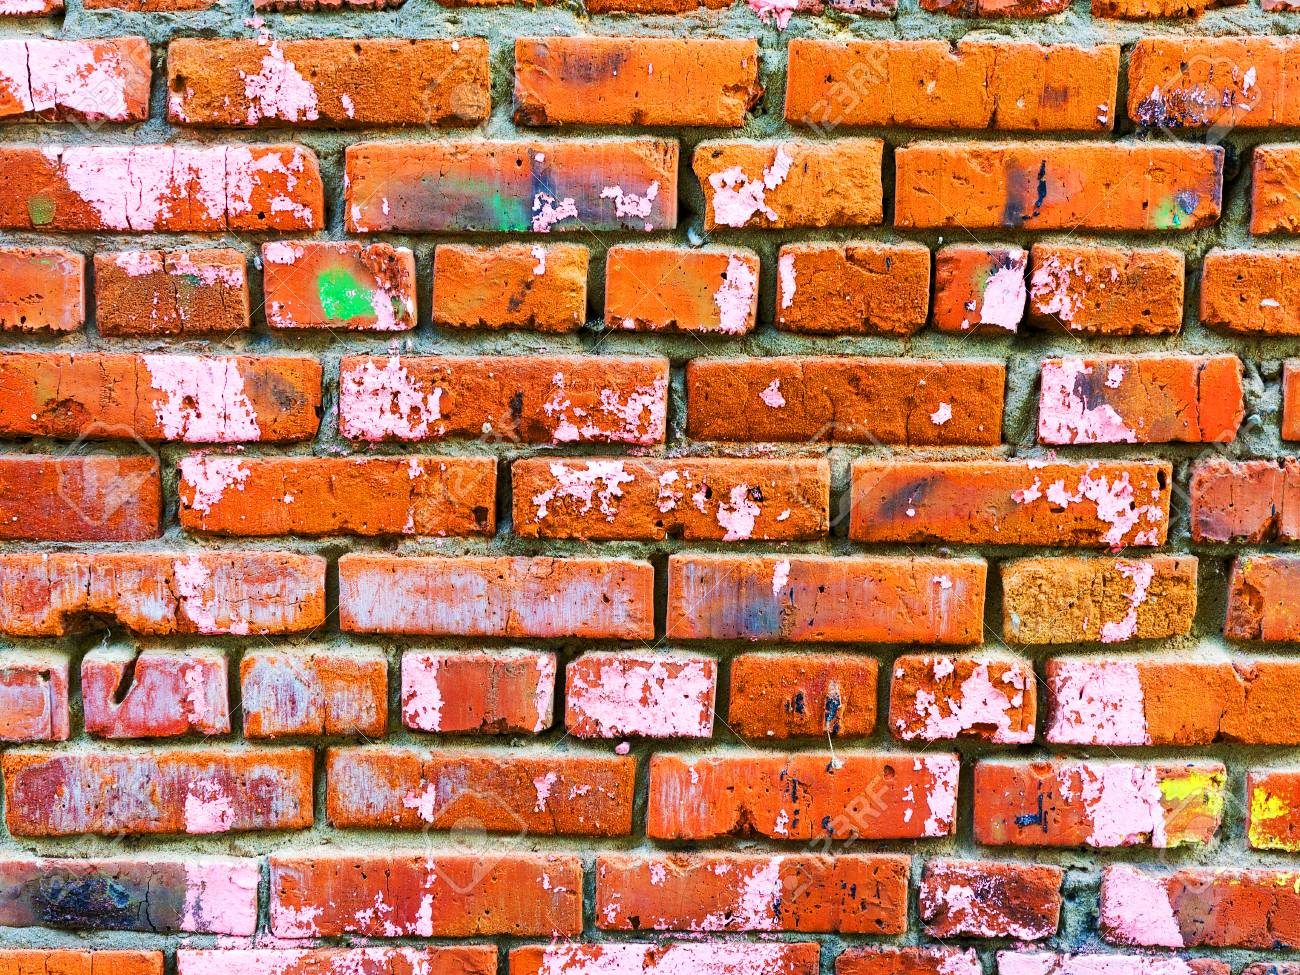 Paint On The Walls Of Red Brick Brick Wall Splattered With Paint